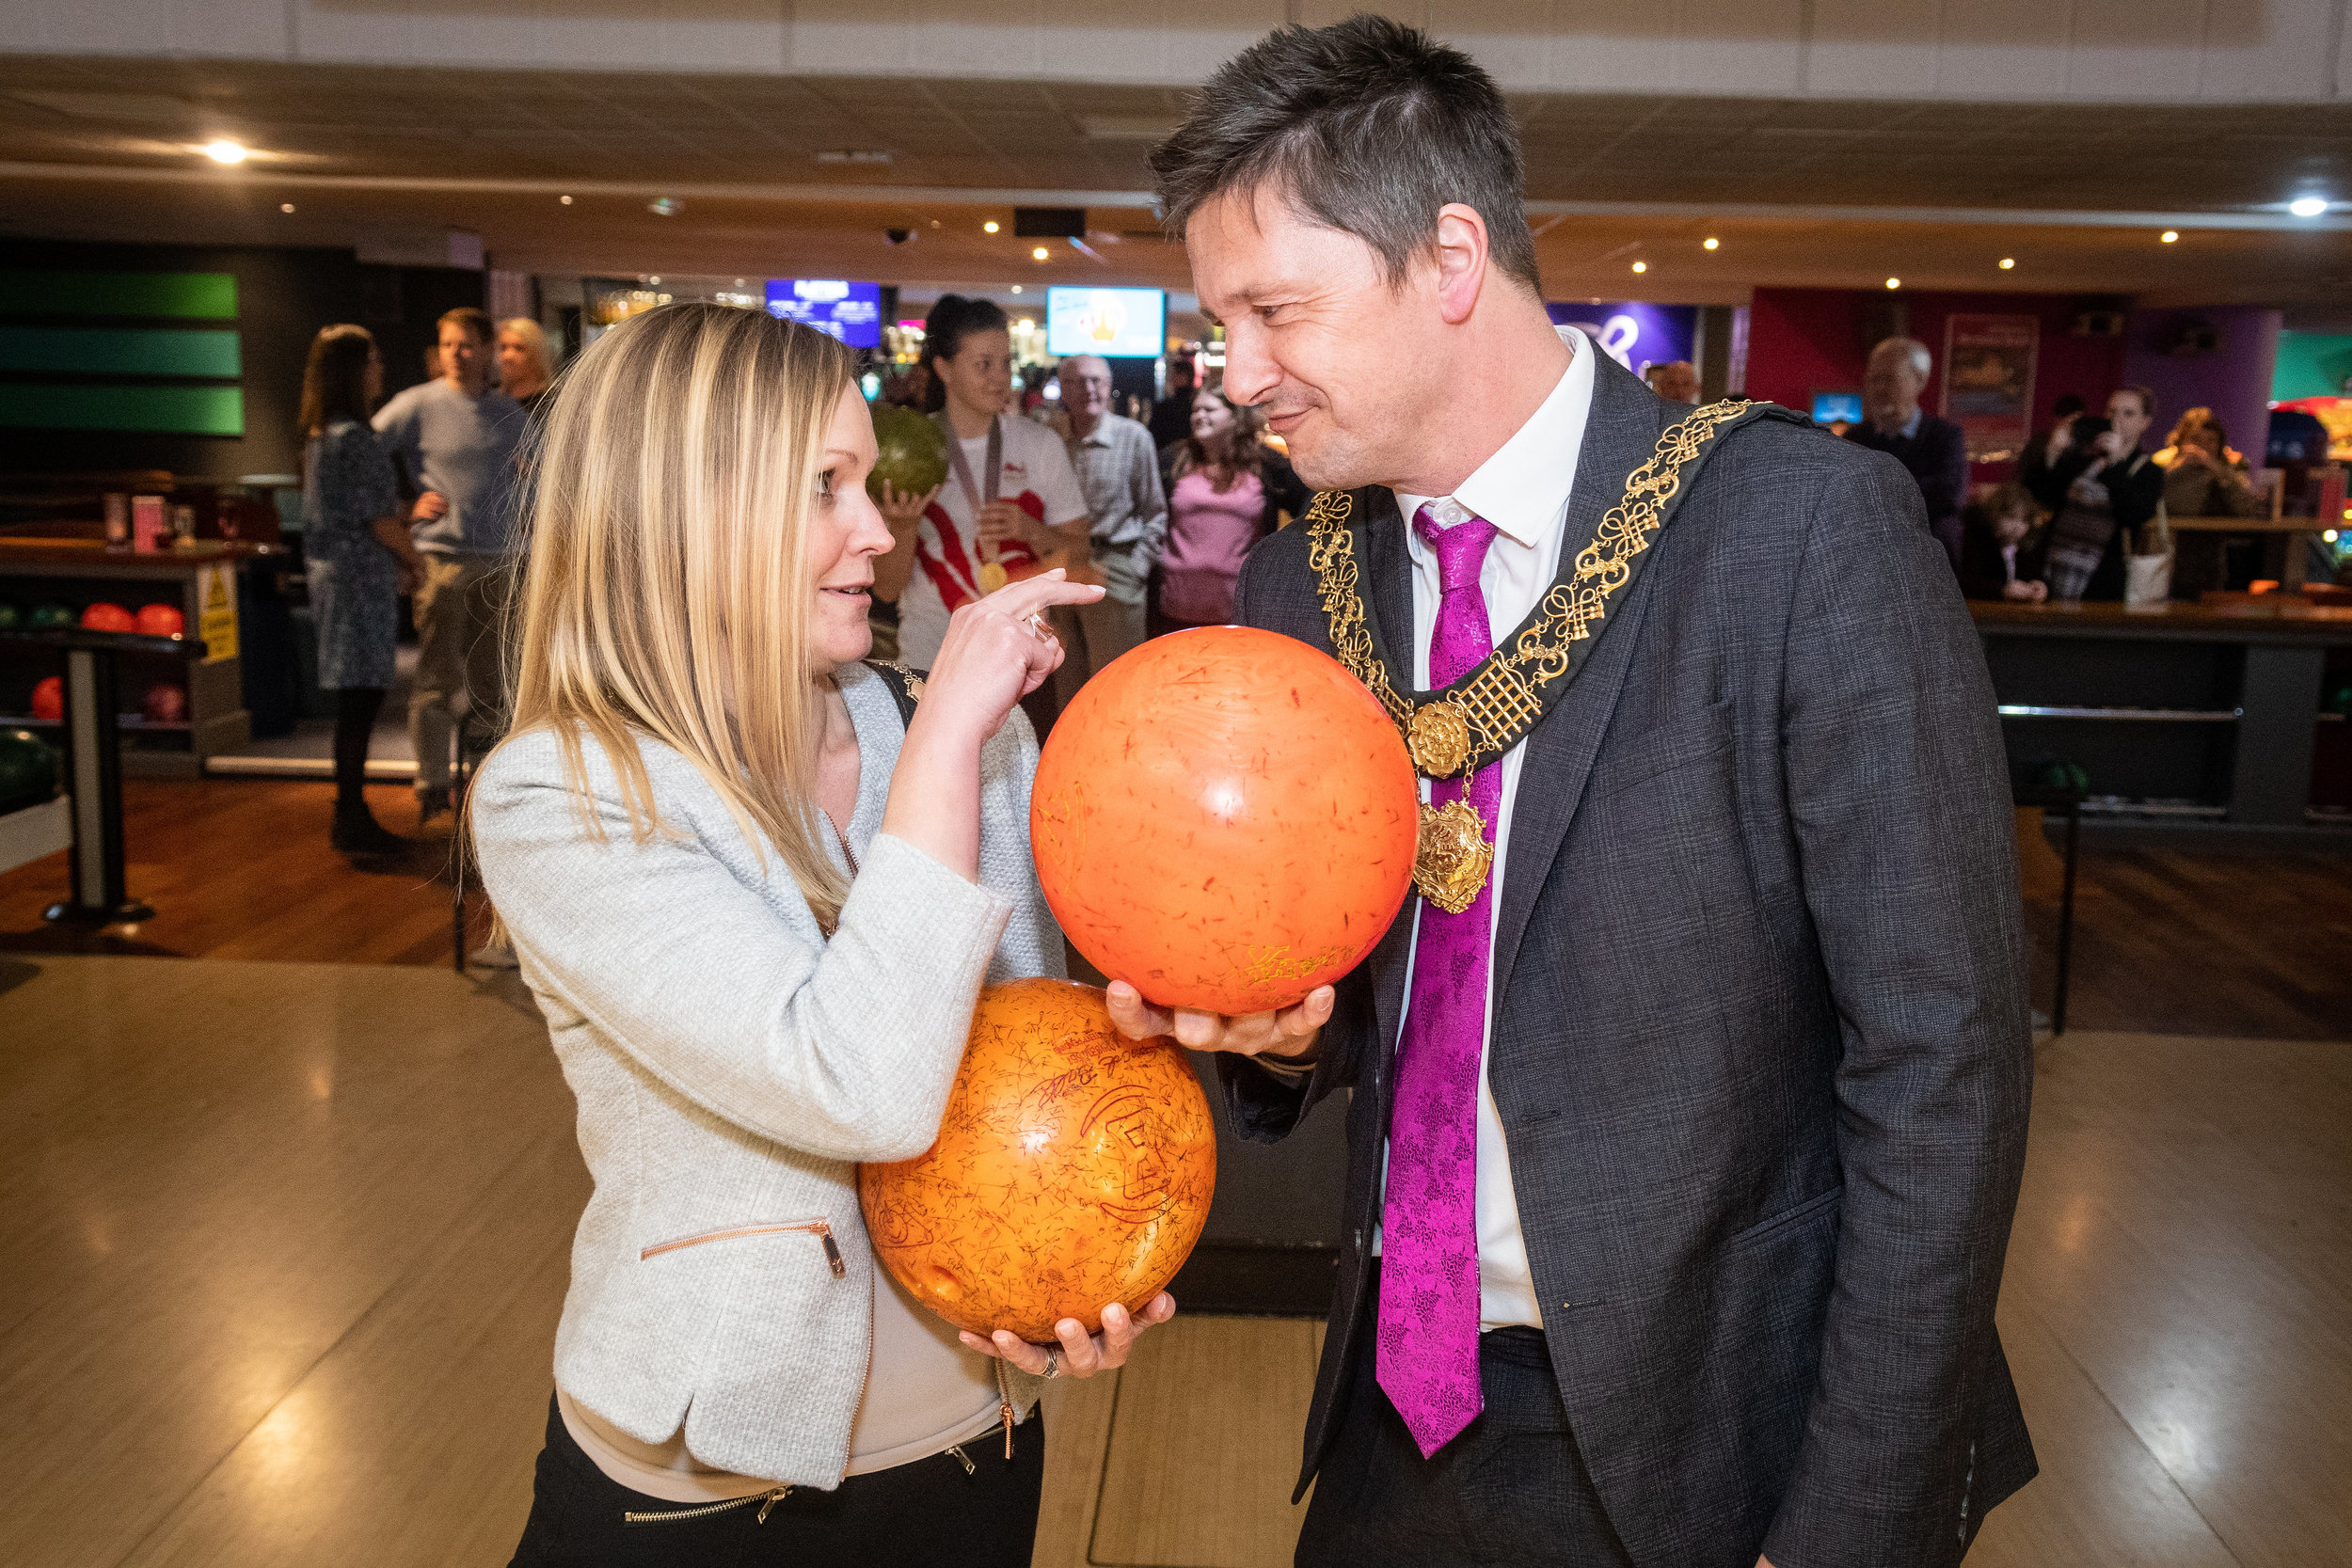 Councillor John Whitby with his wife Juliette during the Mayor v Mayoress charity event at Tenpin Derby. Penguin PR: Public relations, media and communications